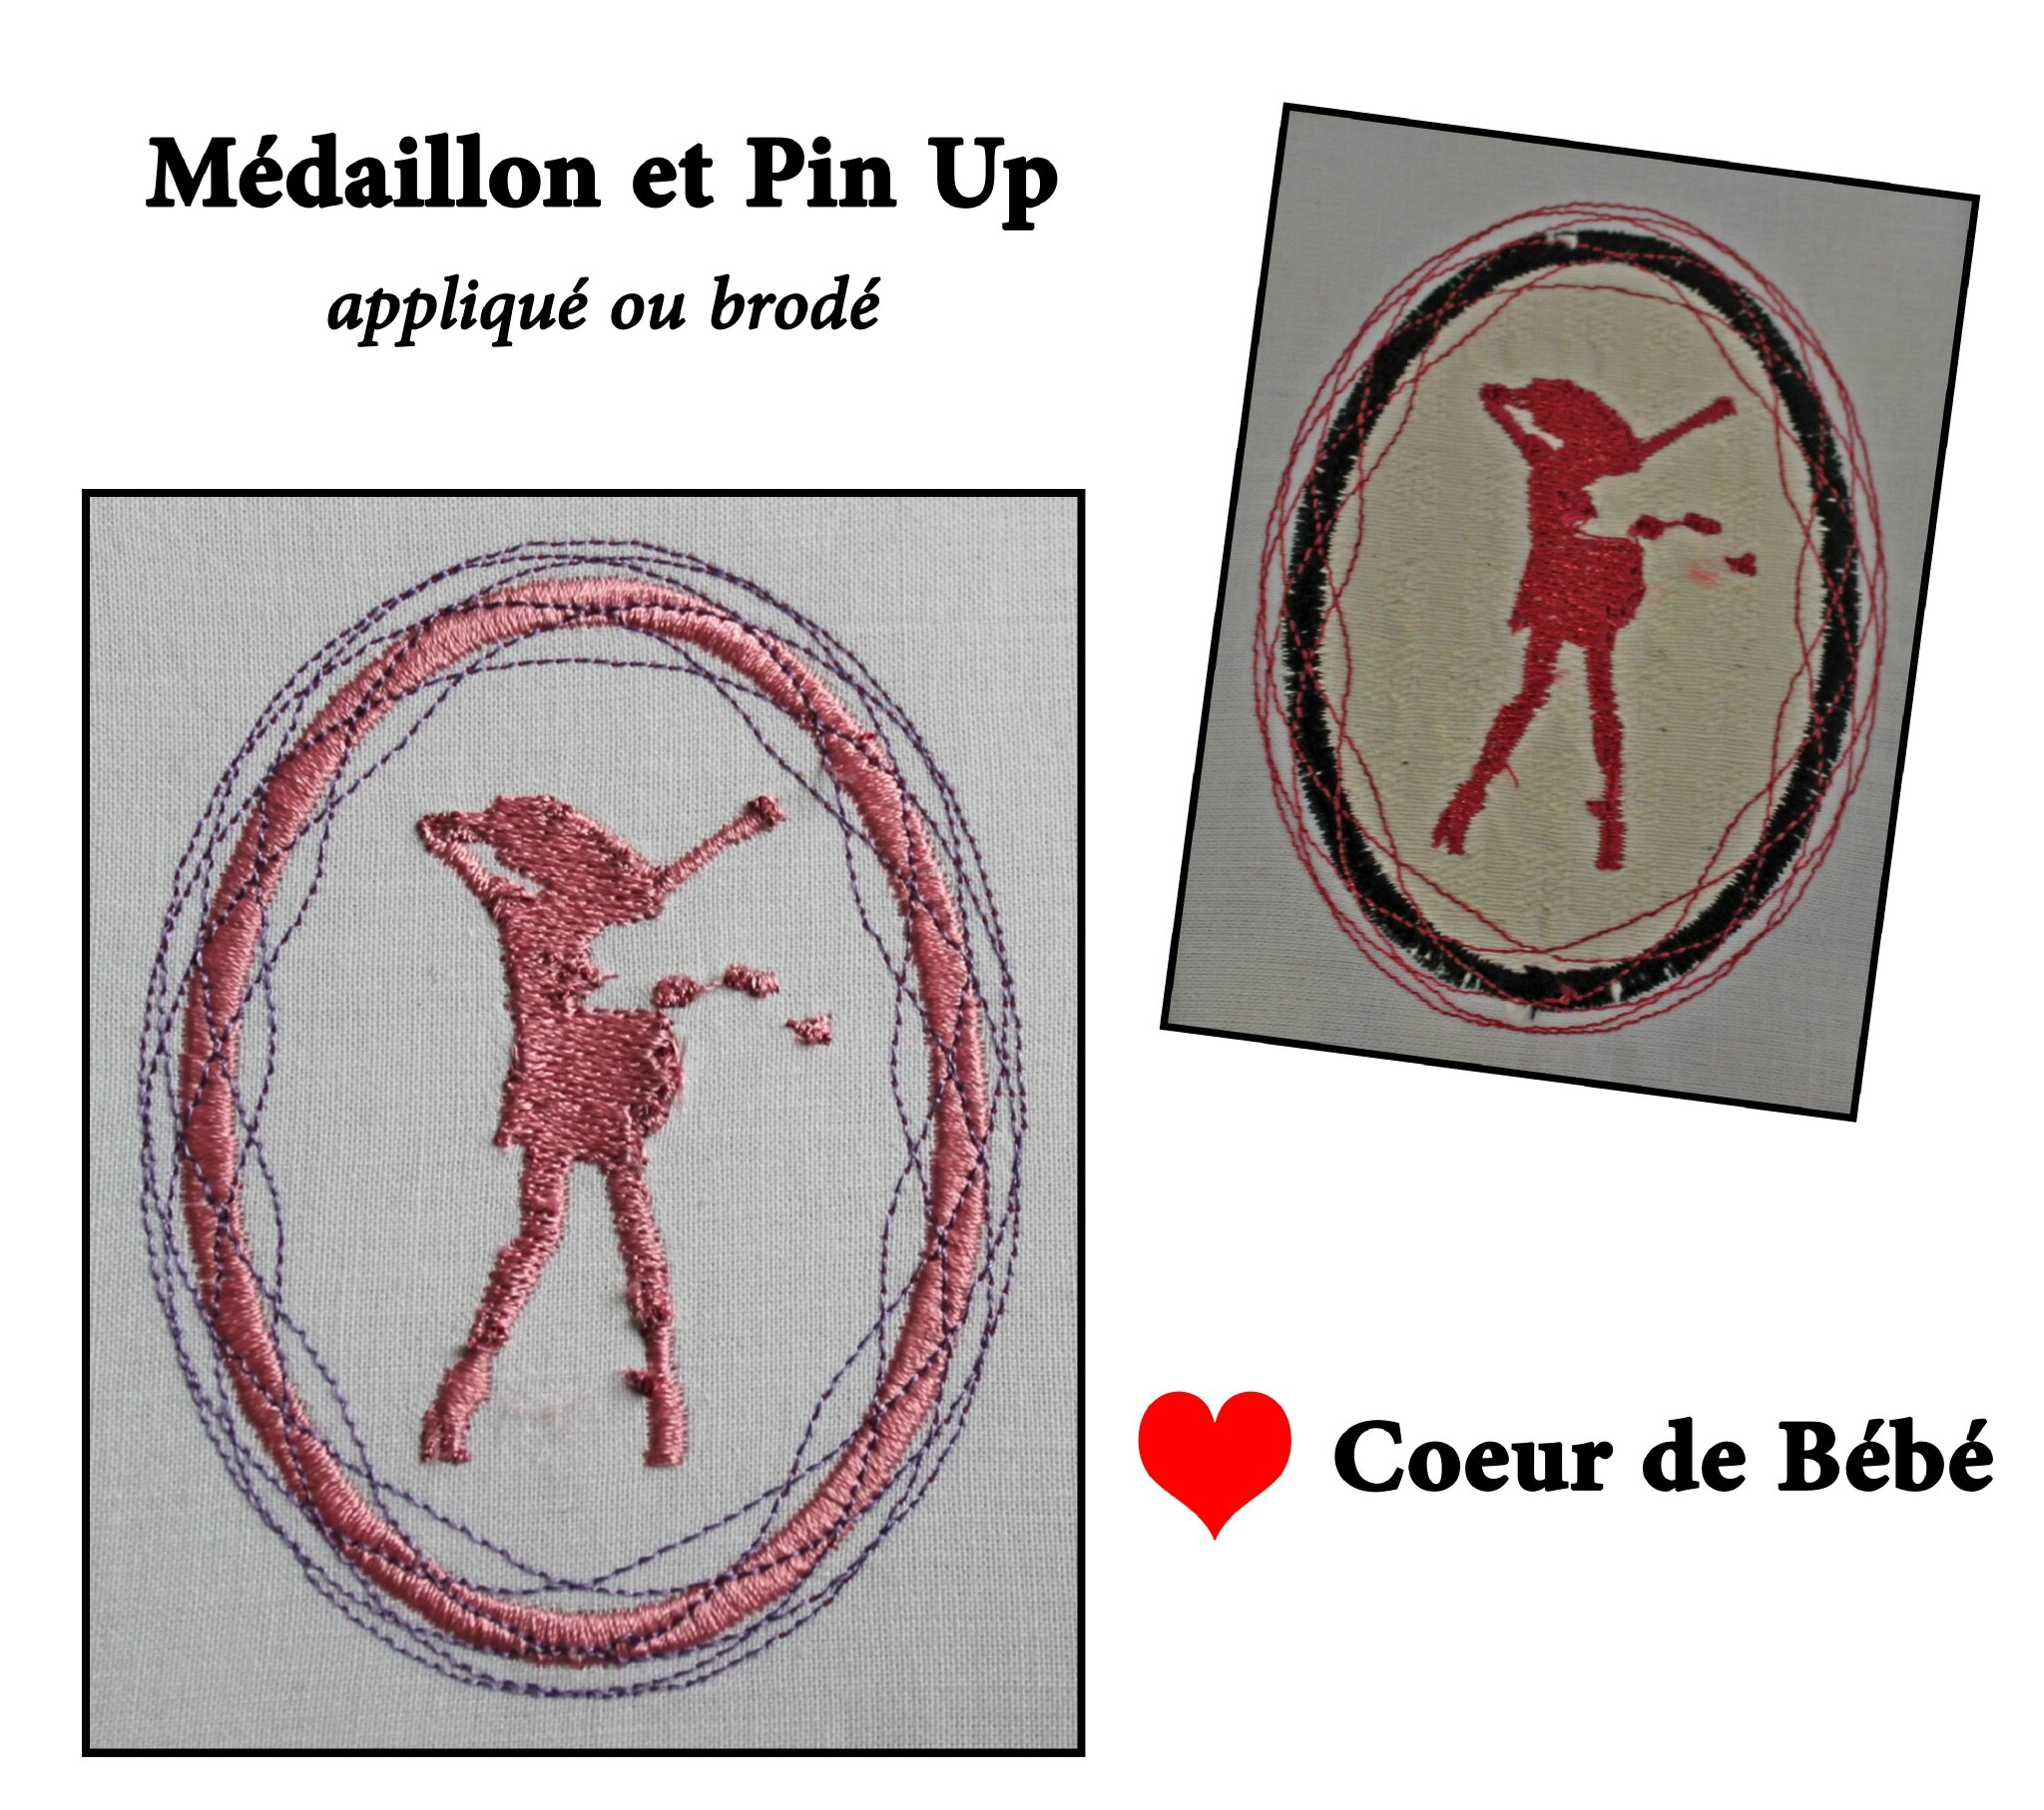 Médaillon et Pin-up